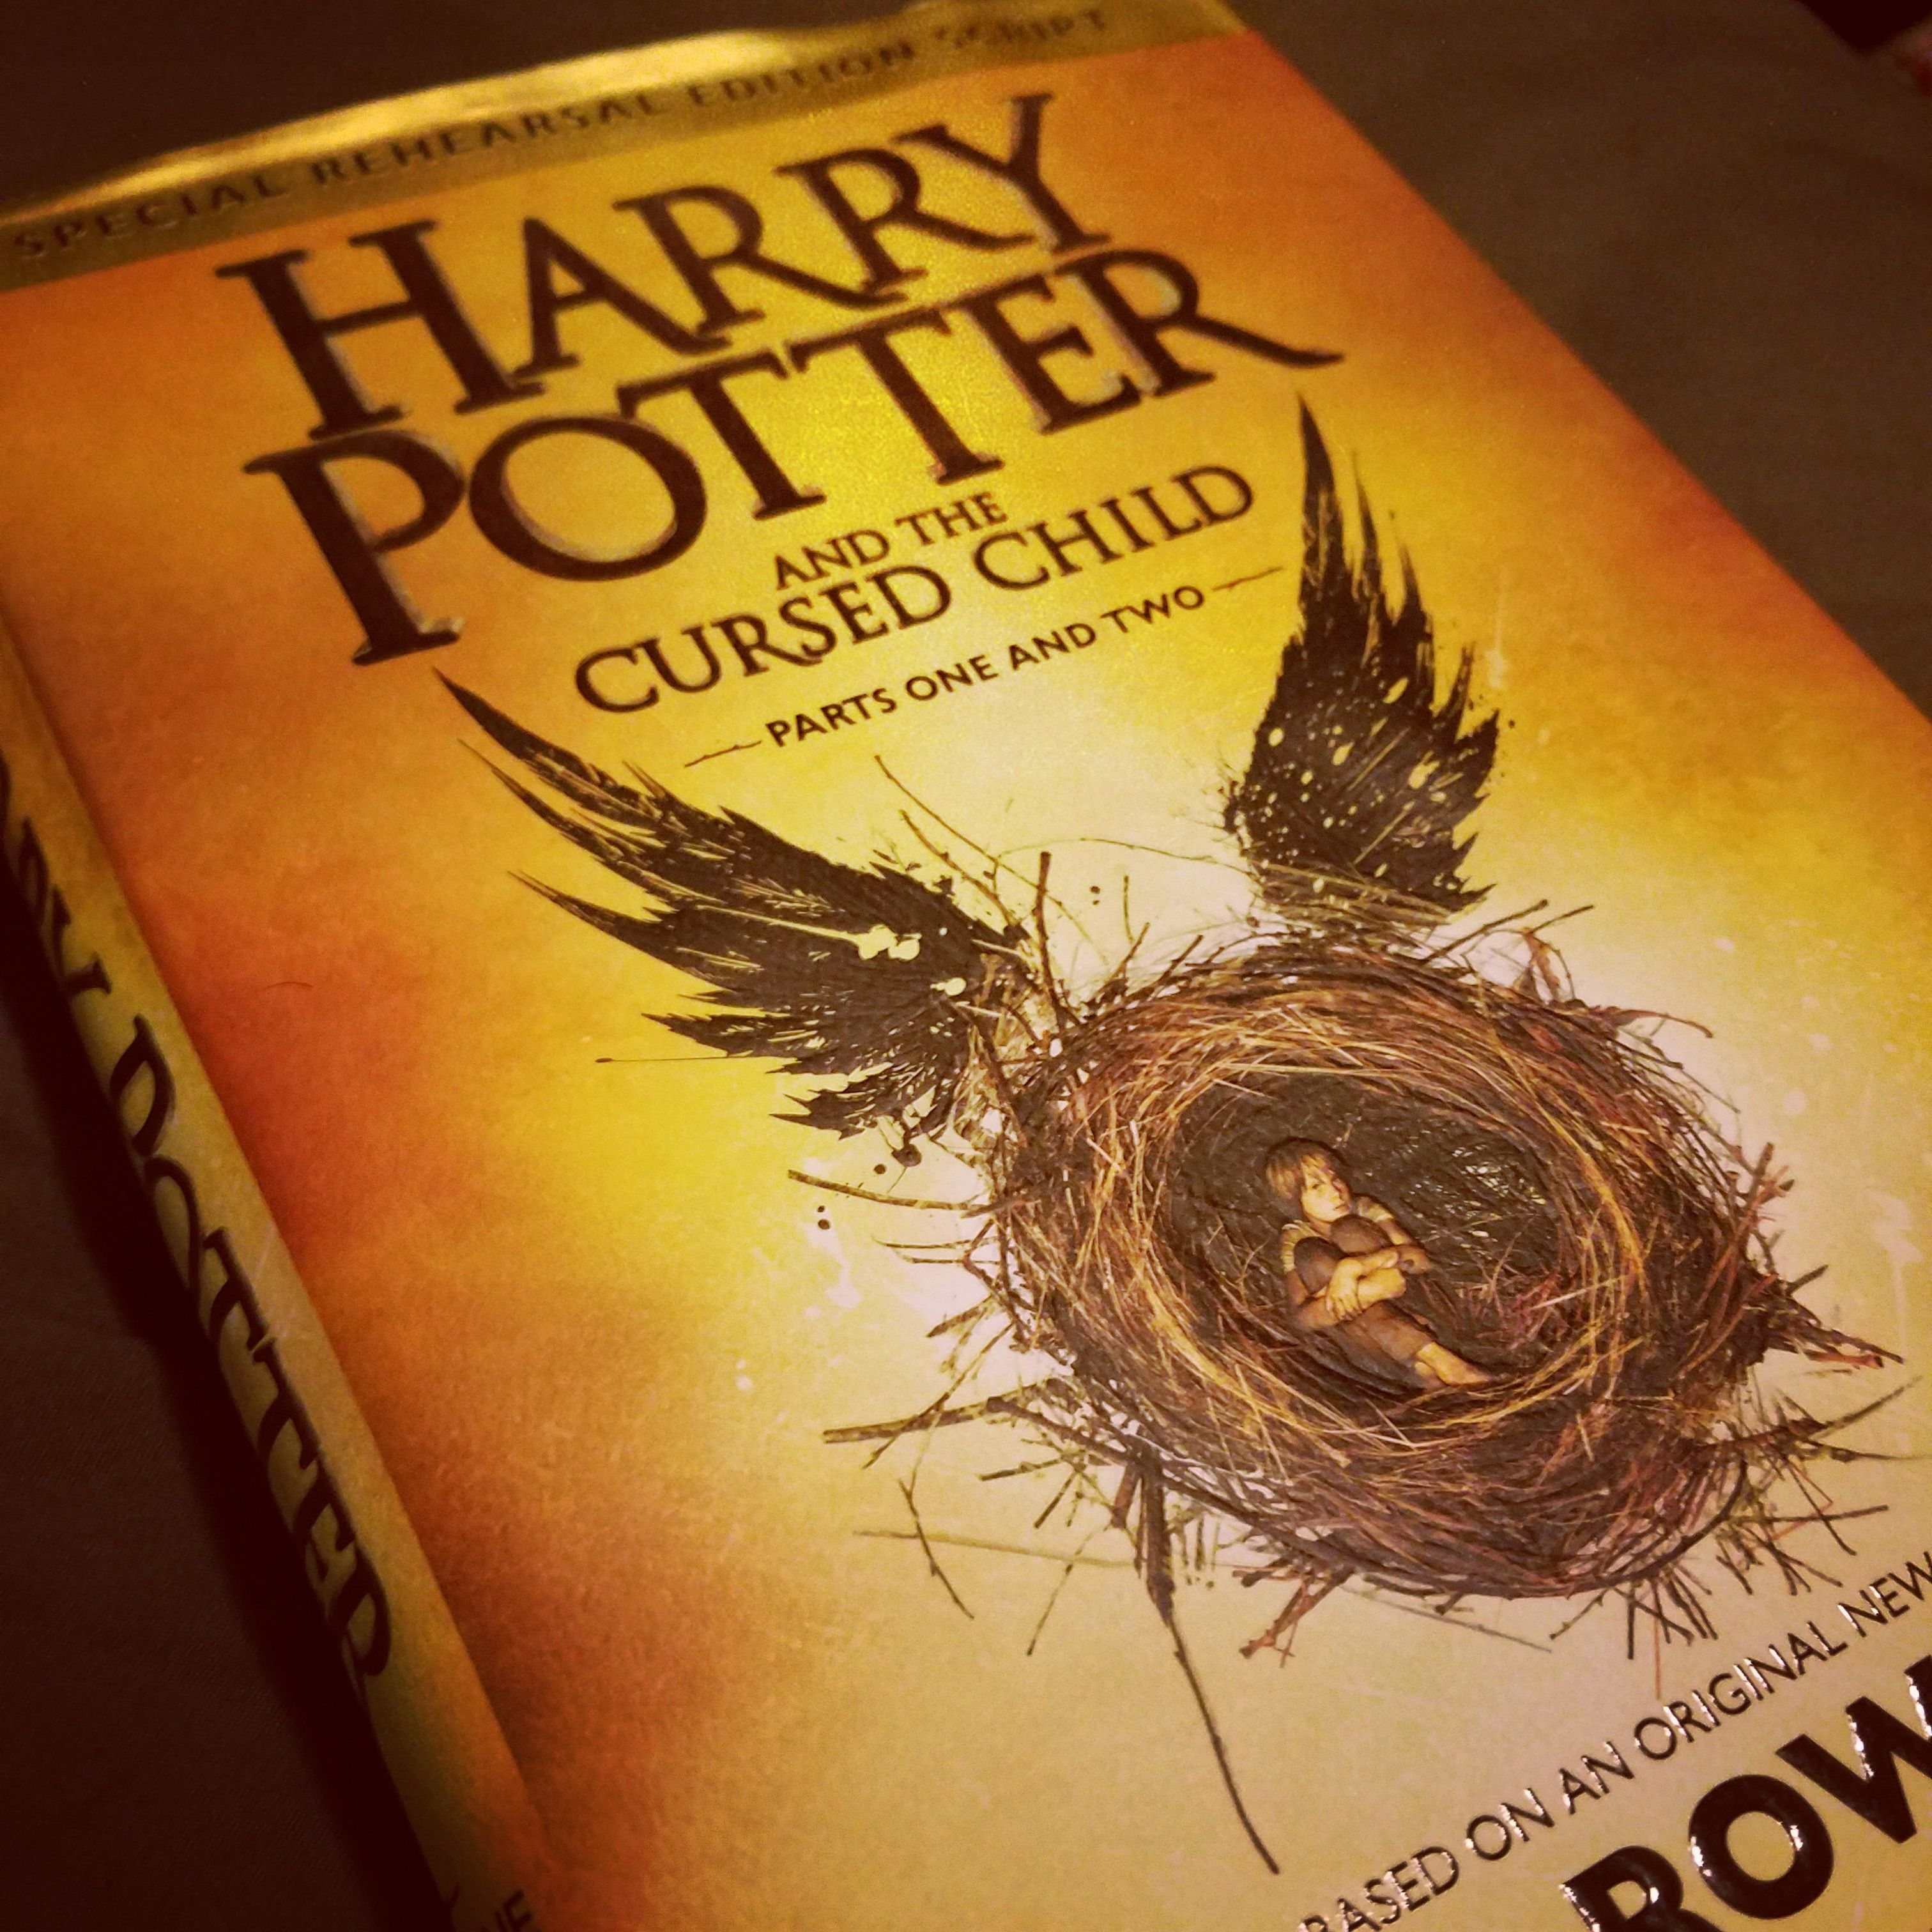 Harry Potter And The Cursed Child Cursed Child Harry Potter